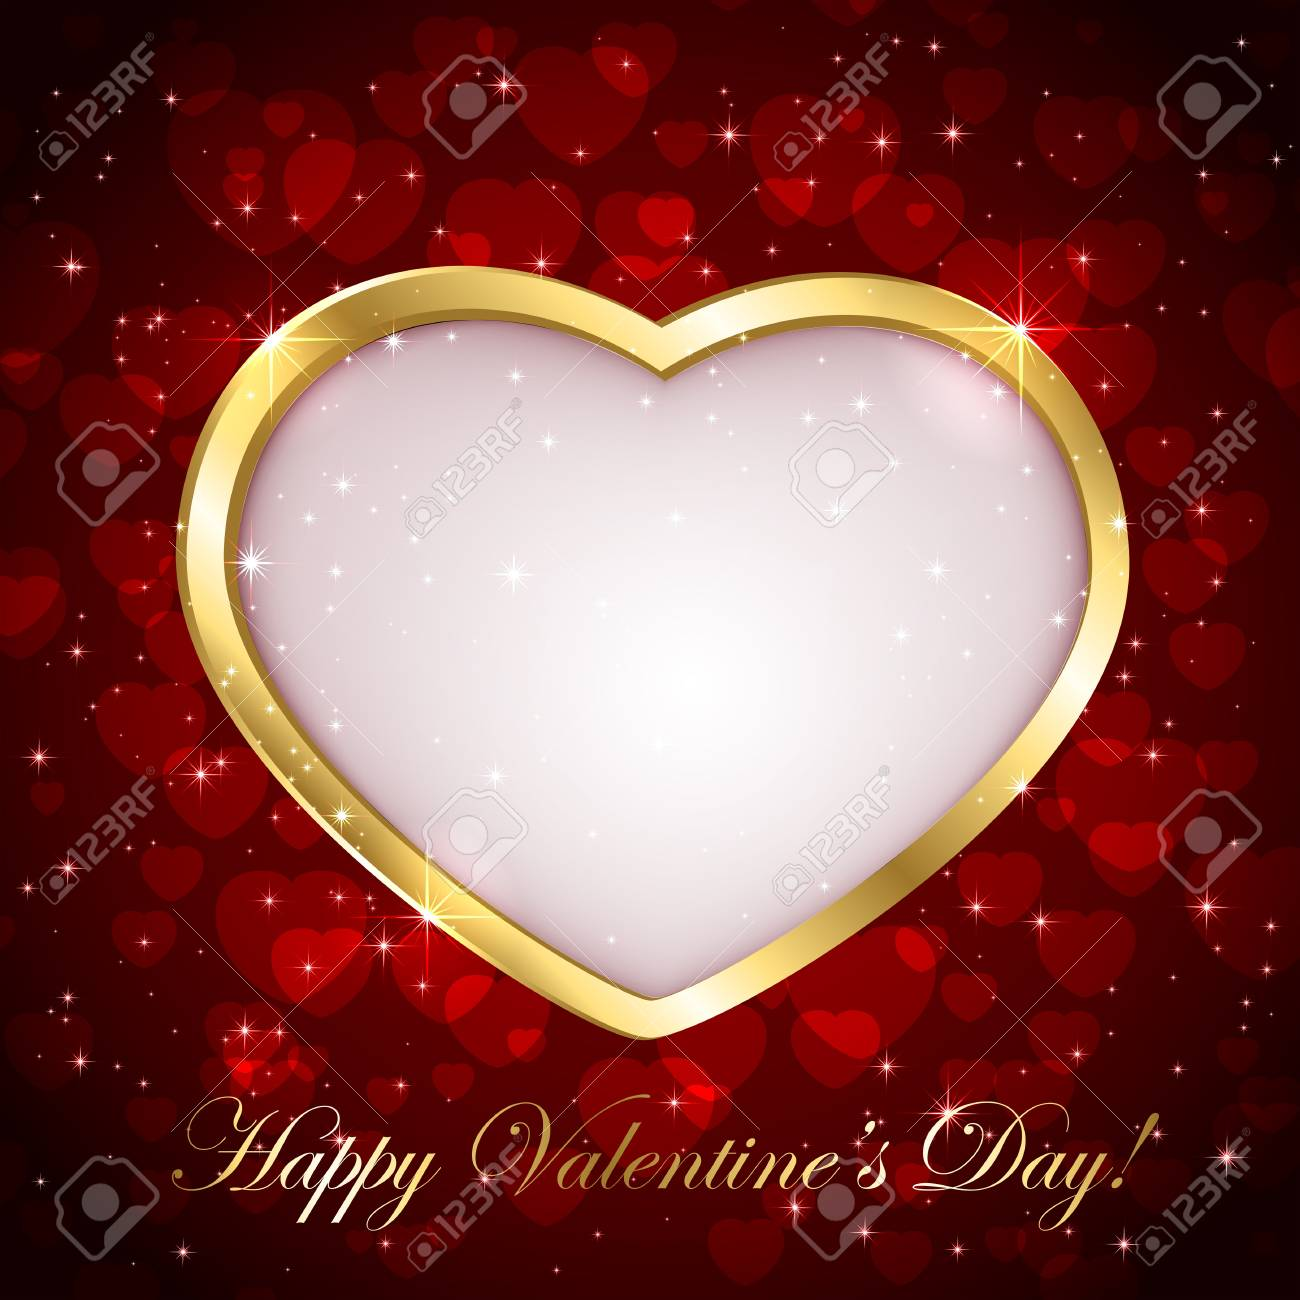 Red sparkling valentines background with heart, illustration. Stock Vector - 17016995